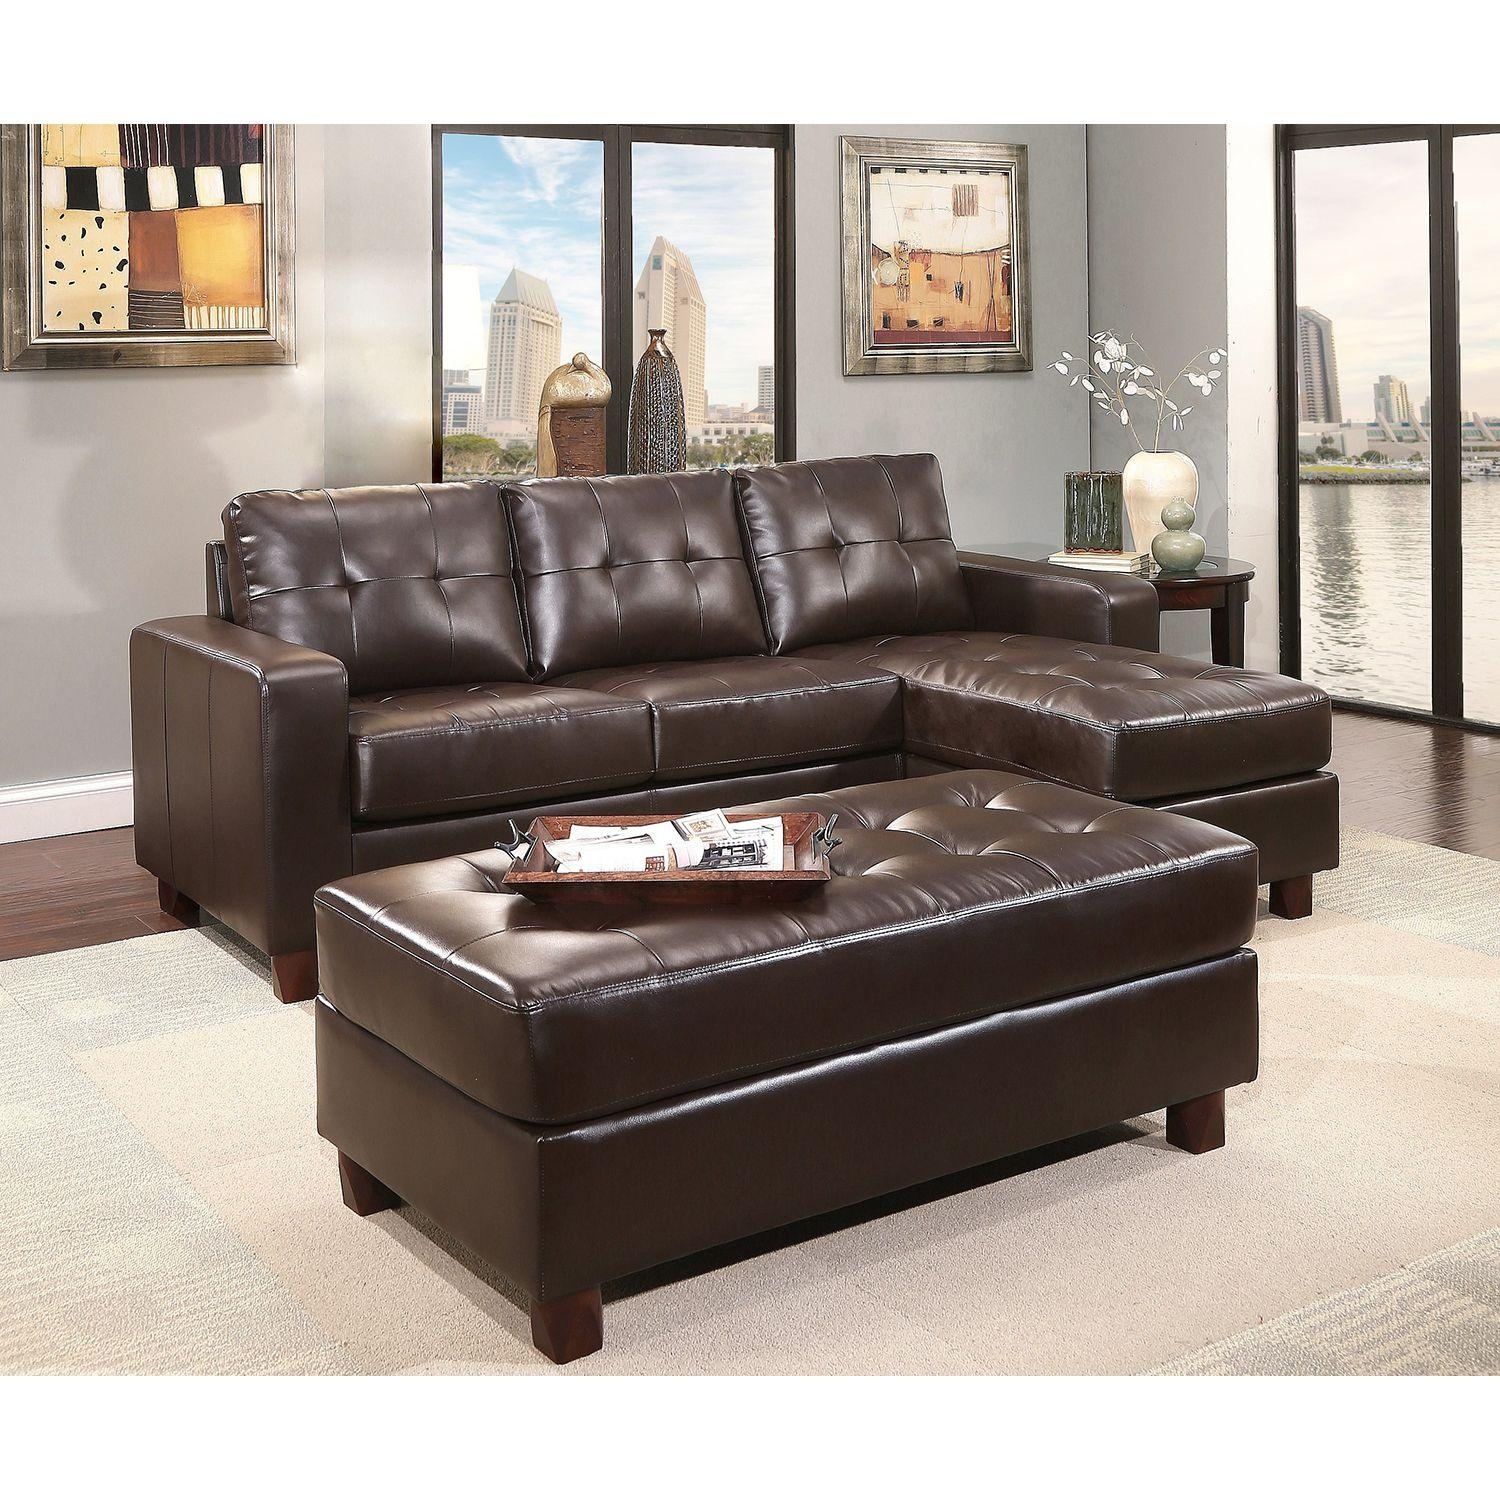 Large Sectional Sofa With Ottoman | Stools, Chairs, Seat, And Inside Sectional With Oversized Ottoman (Image 9 of 20)